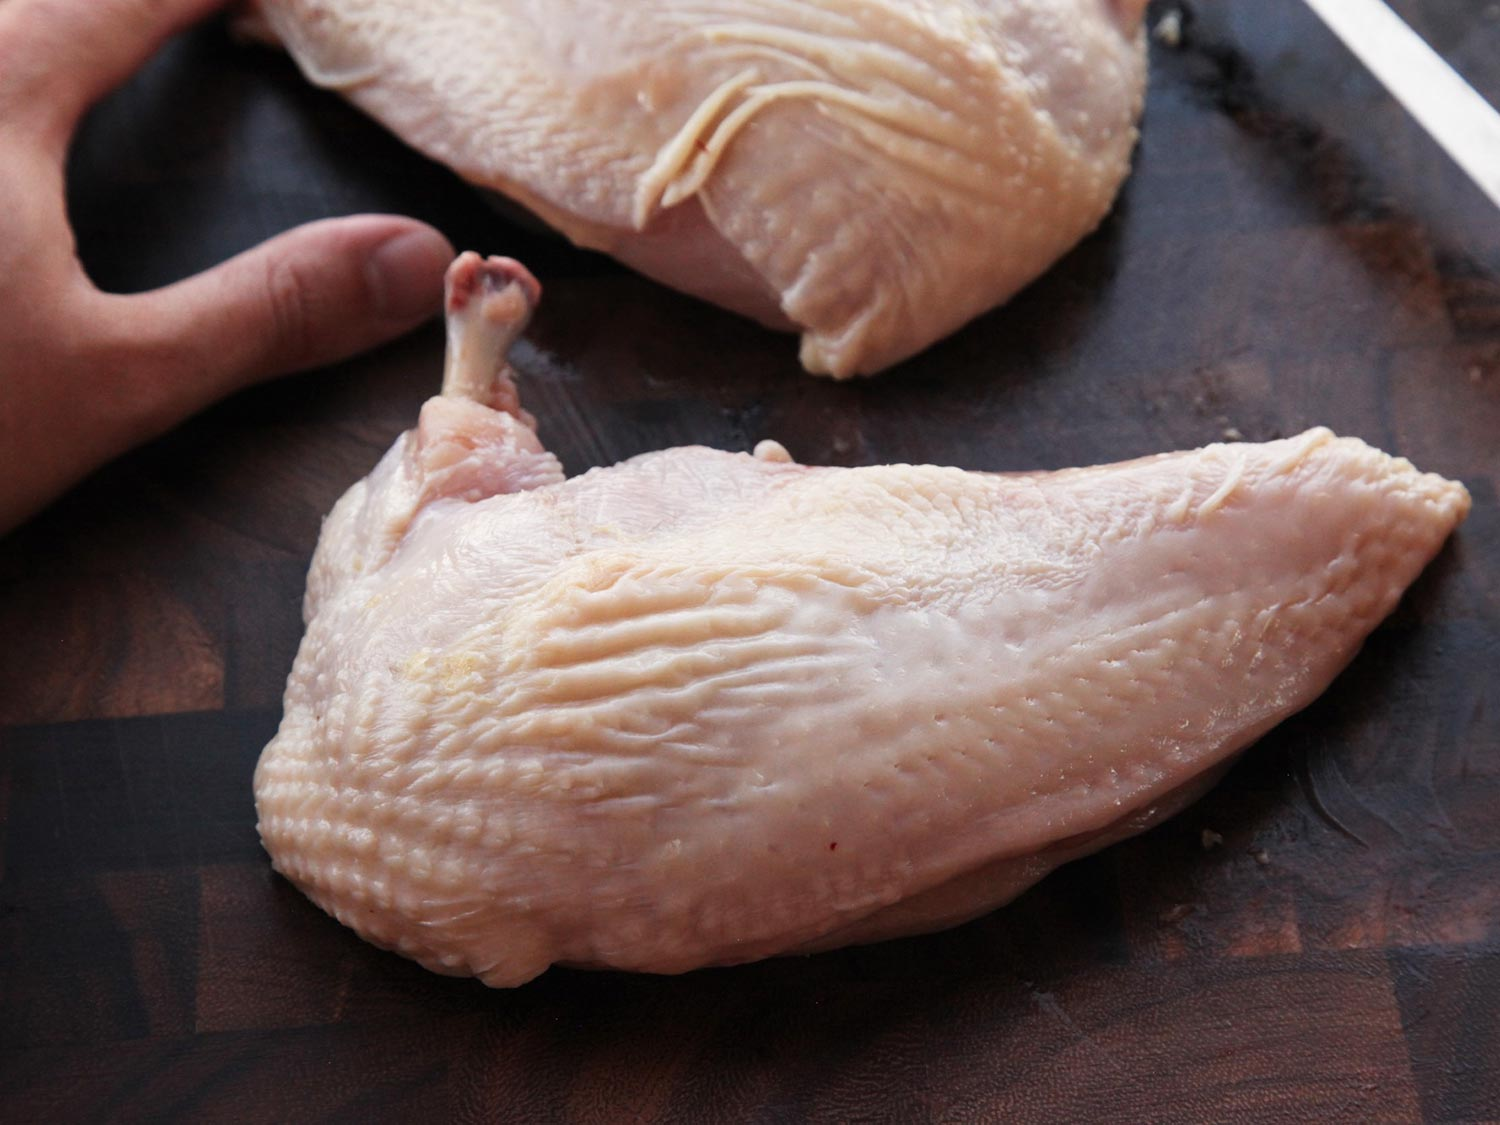 How Lengthy Would You Prepare Poultry Breast?